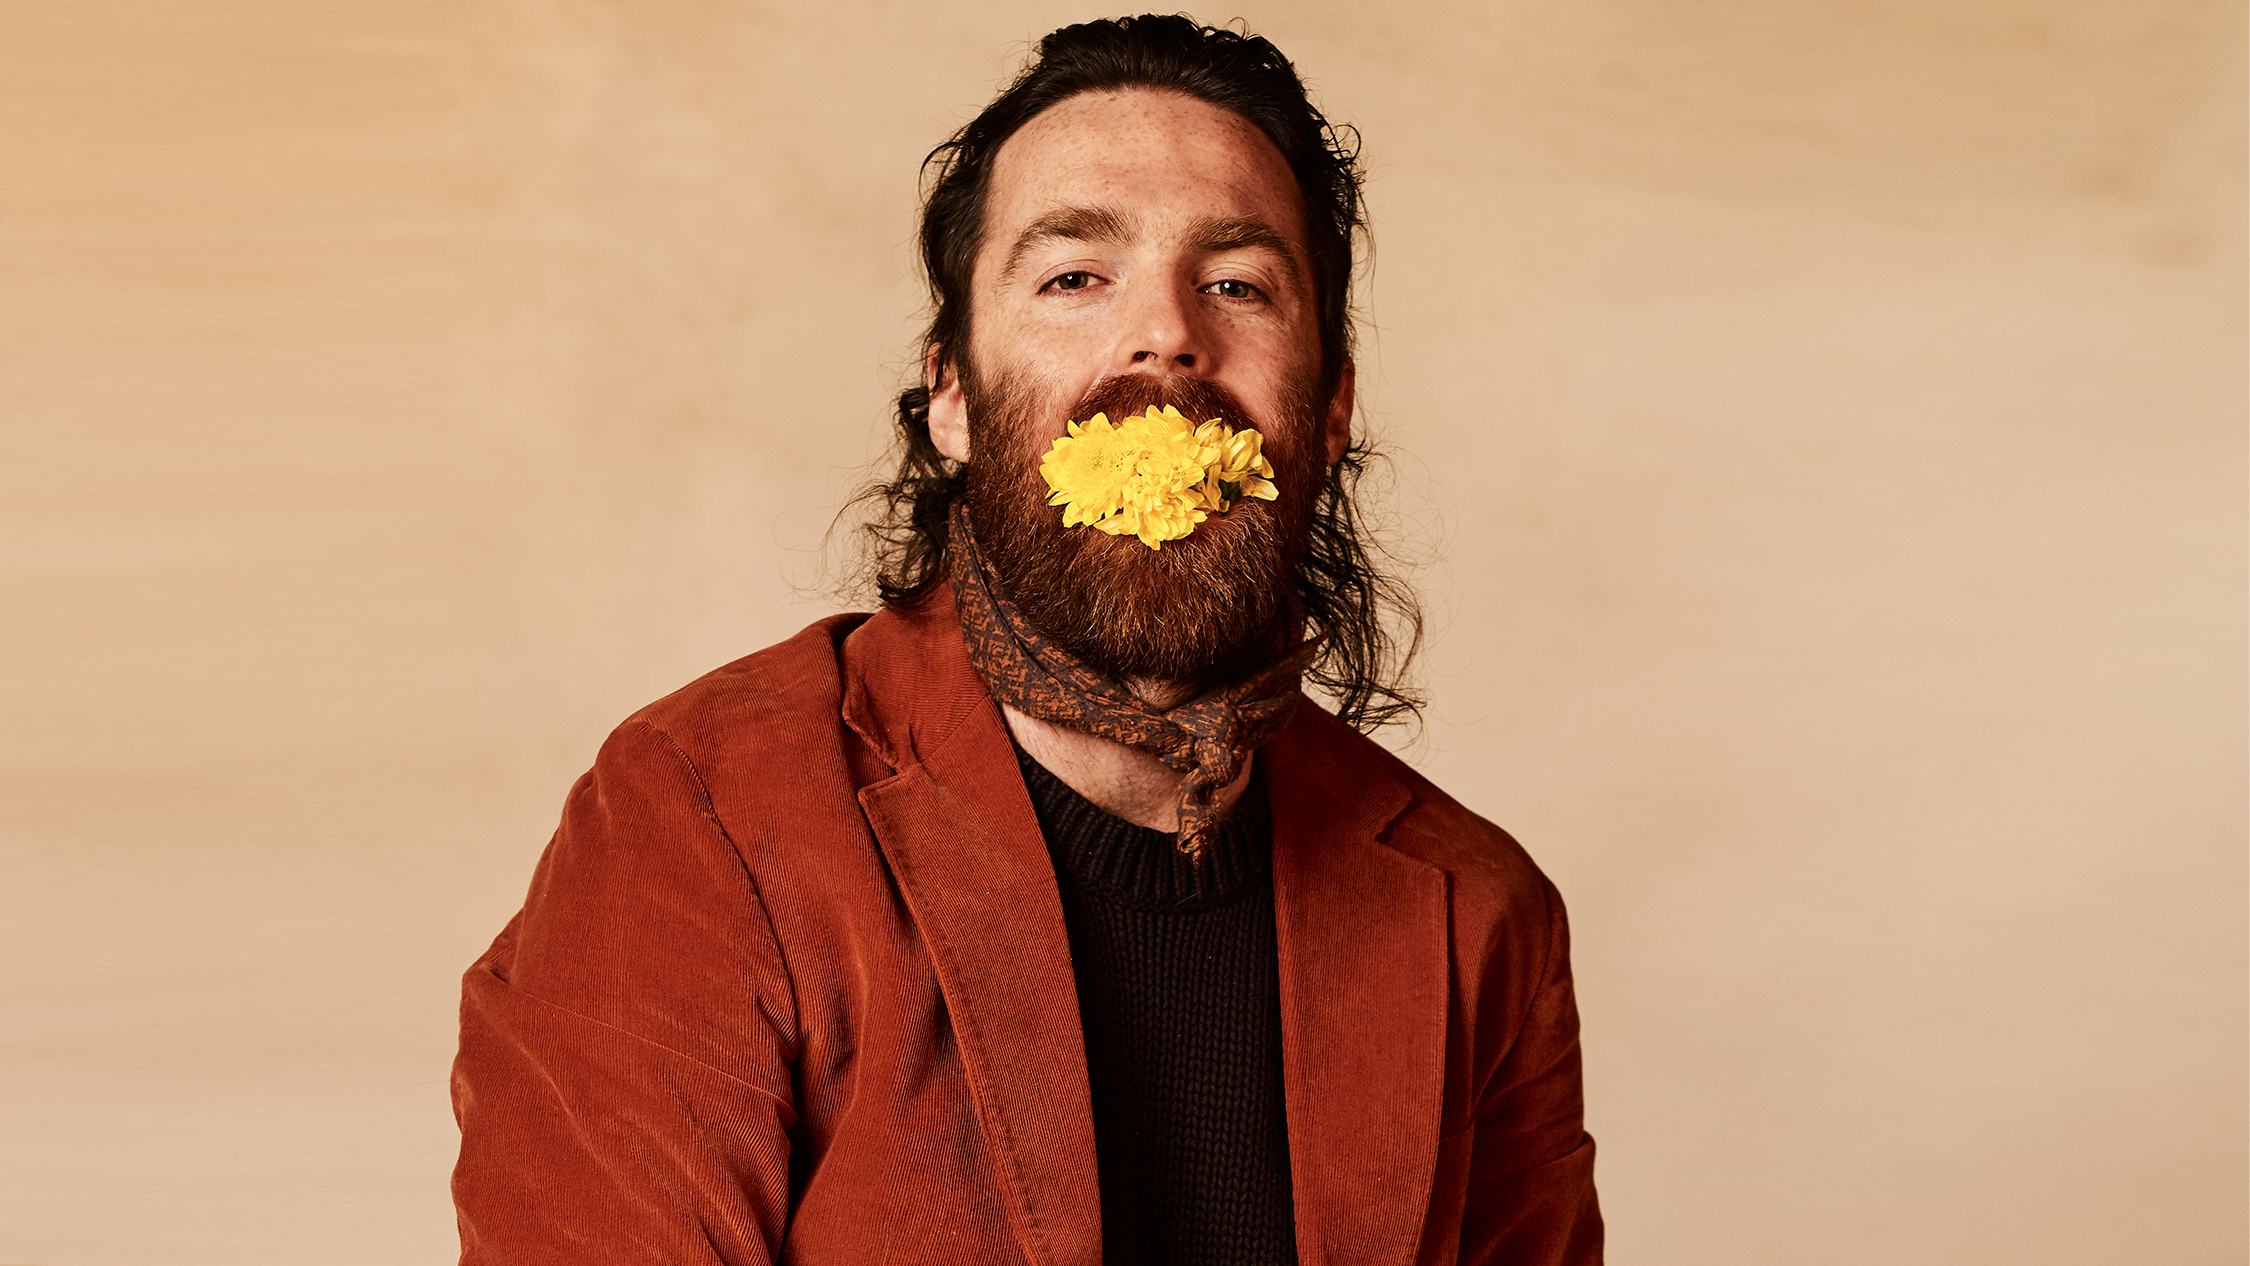 Nick Murphy announces an exclusive Aussie tour, and Sydney is on the bill